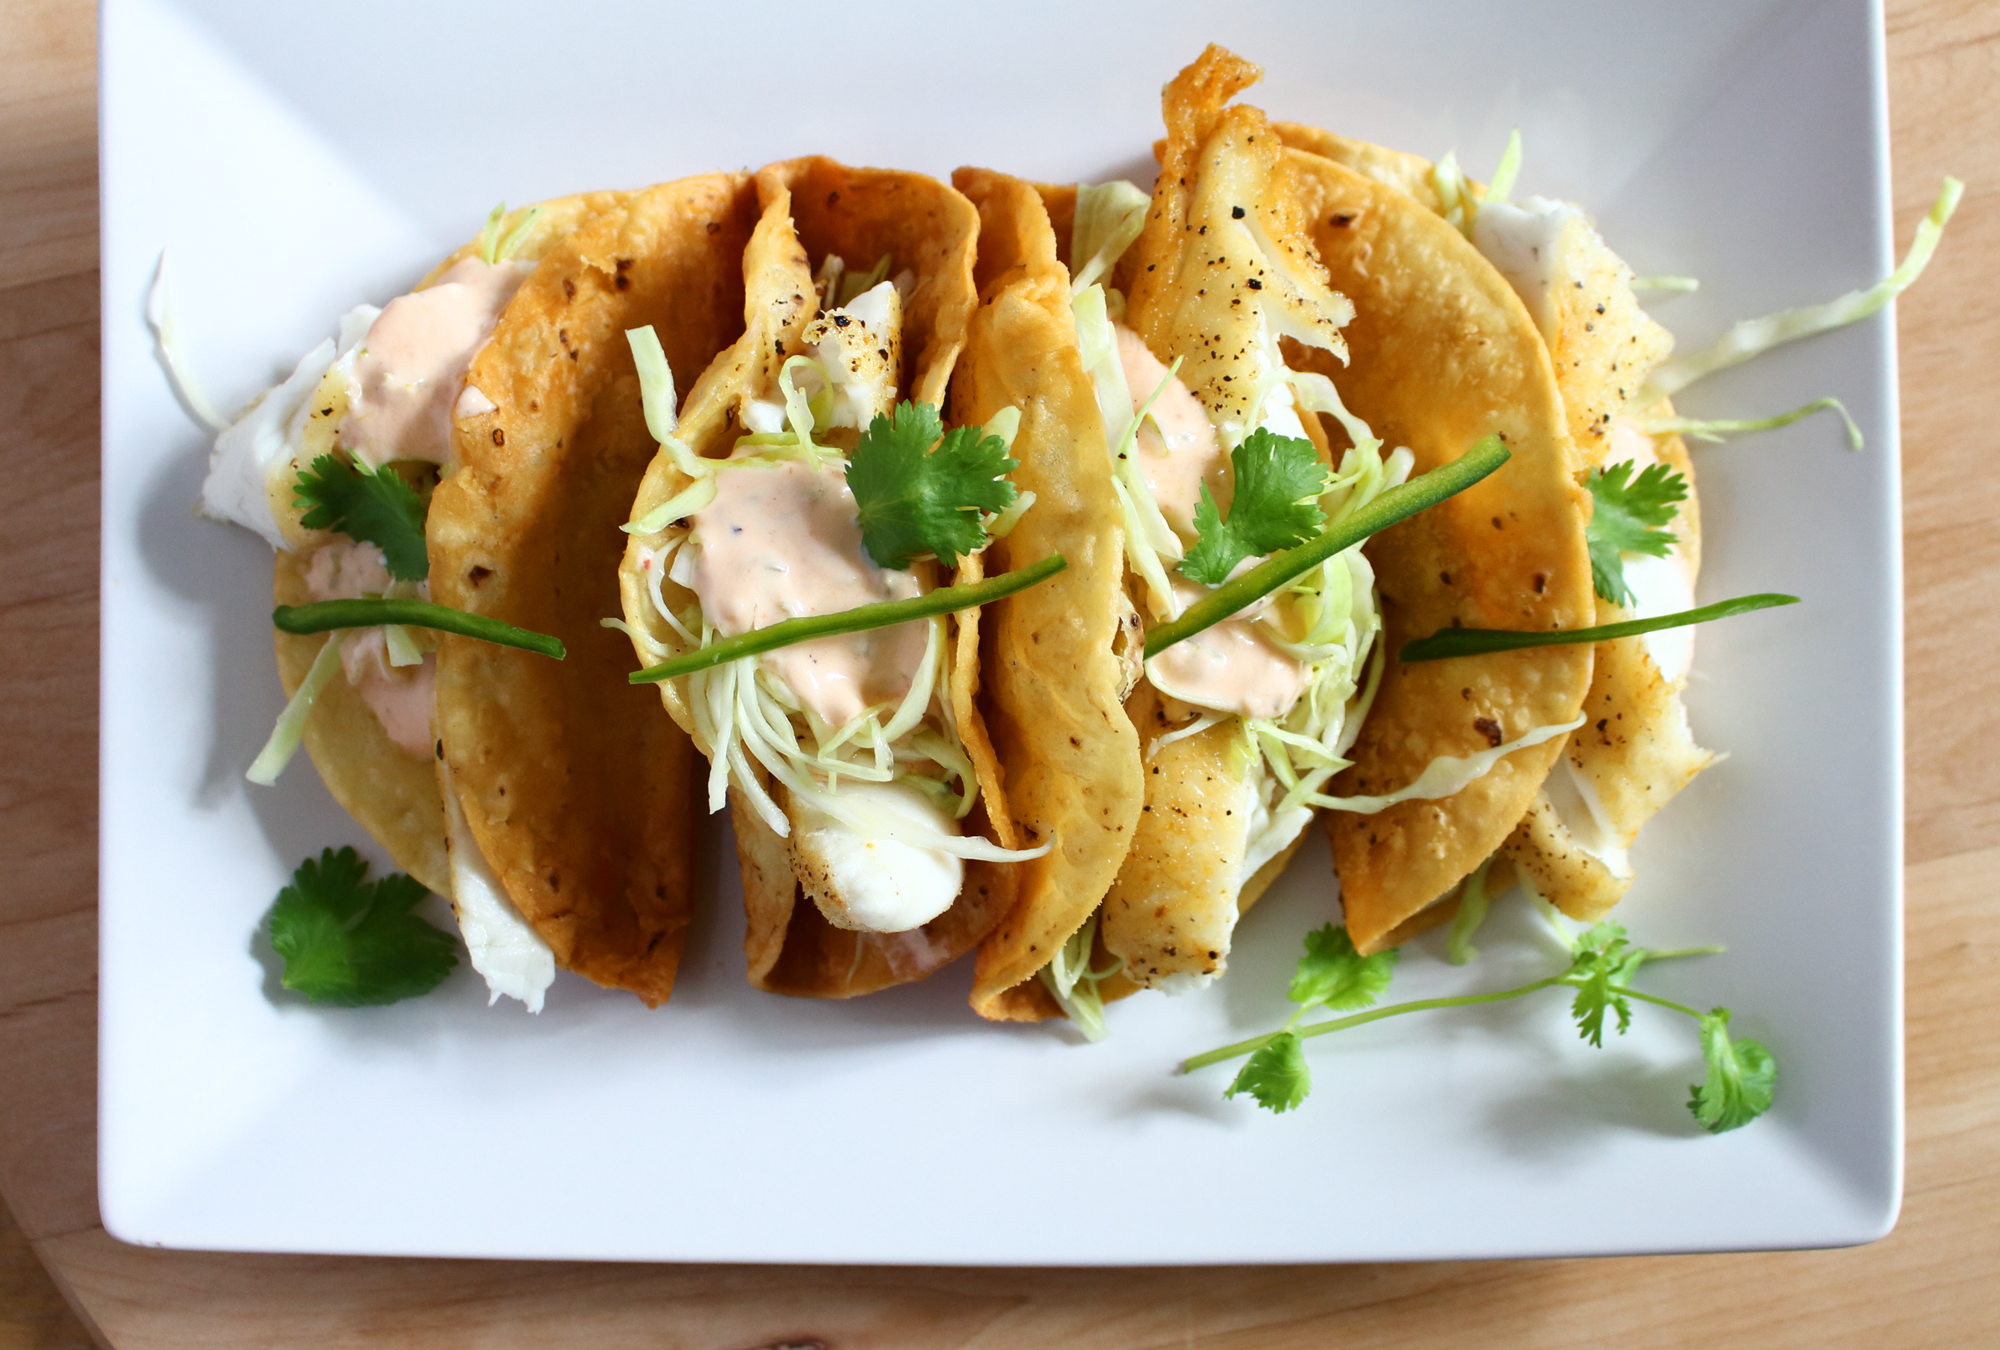 Crispy Fish Tacos with a Spicy Yogurt Sauce